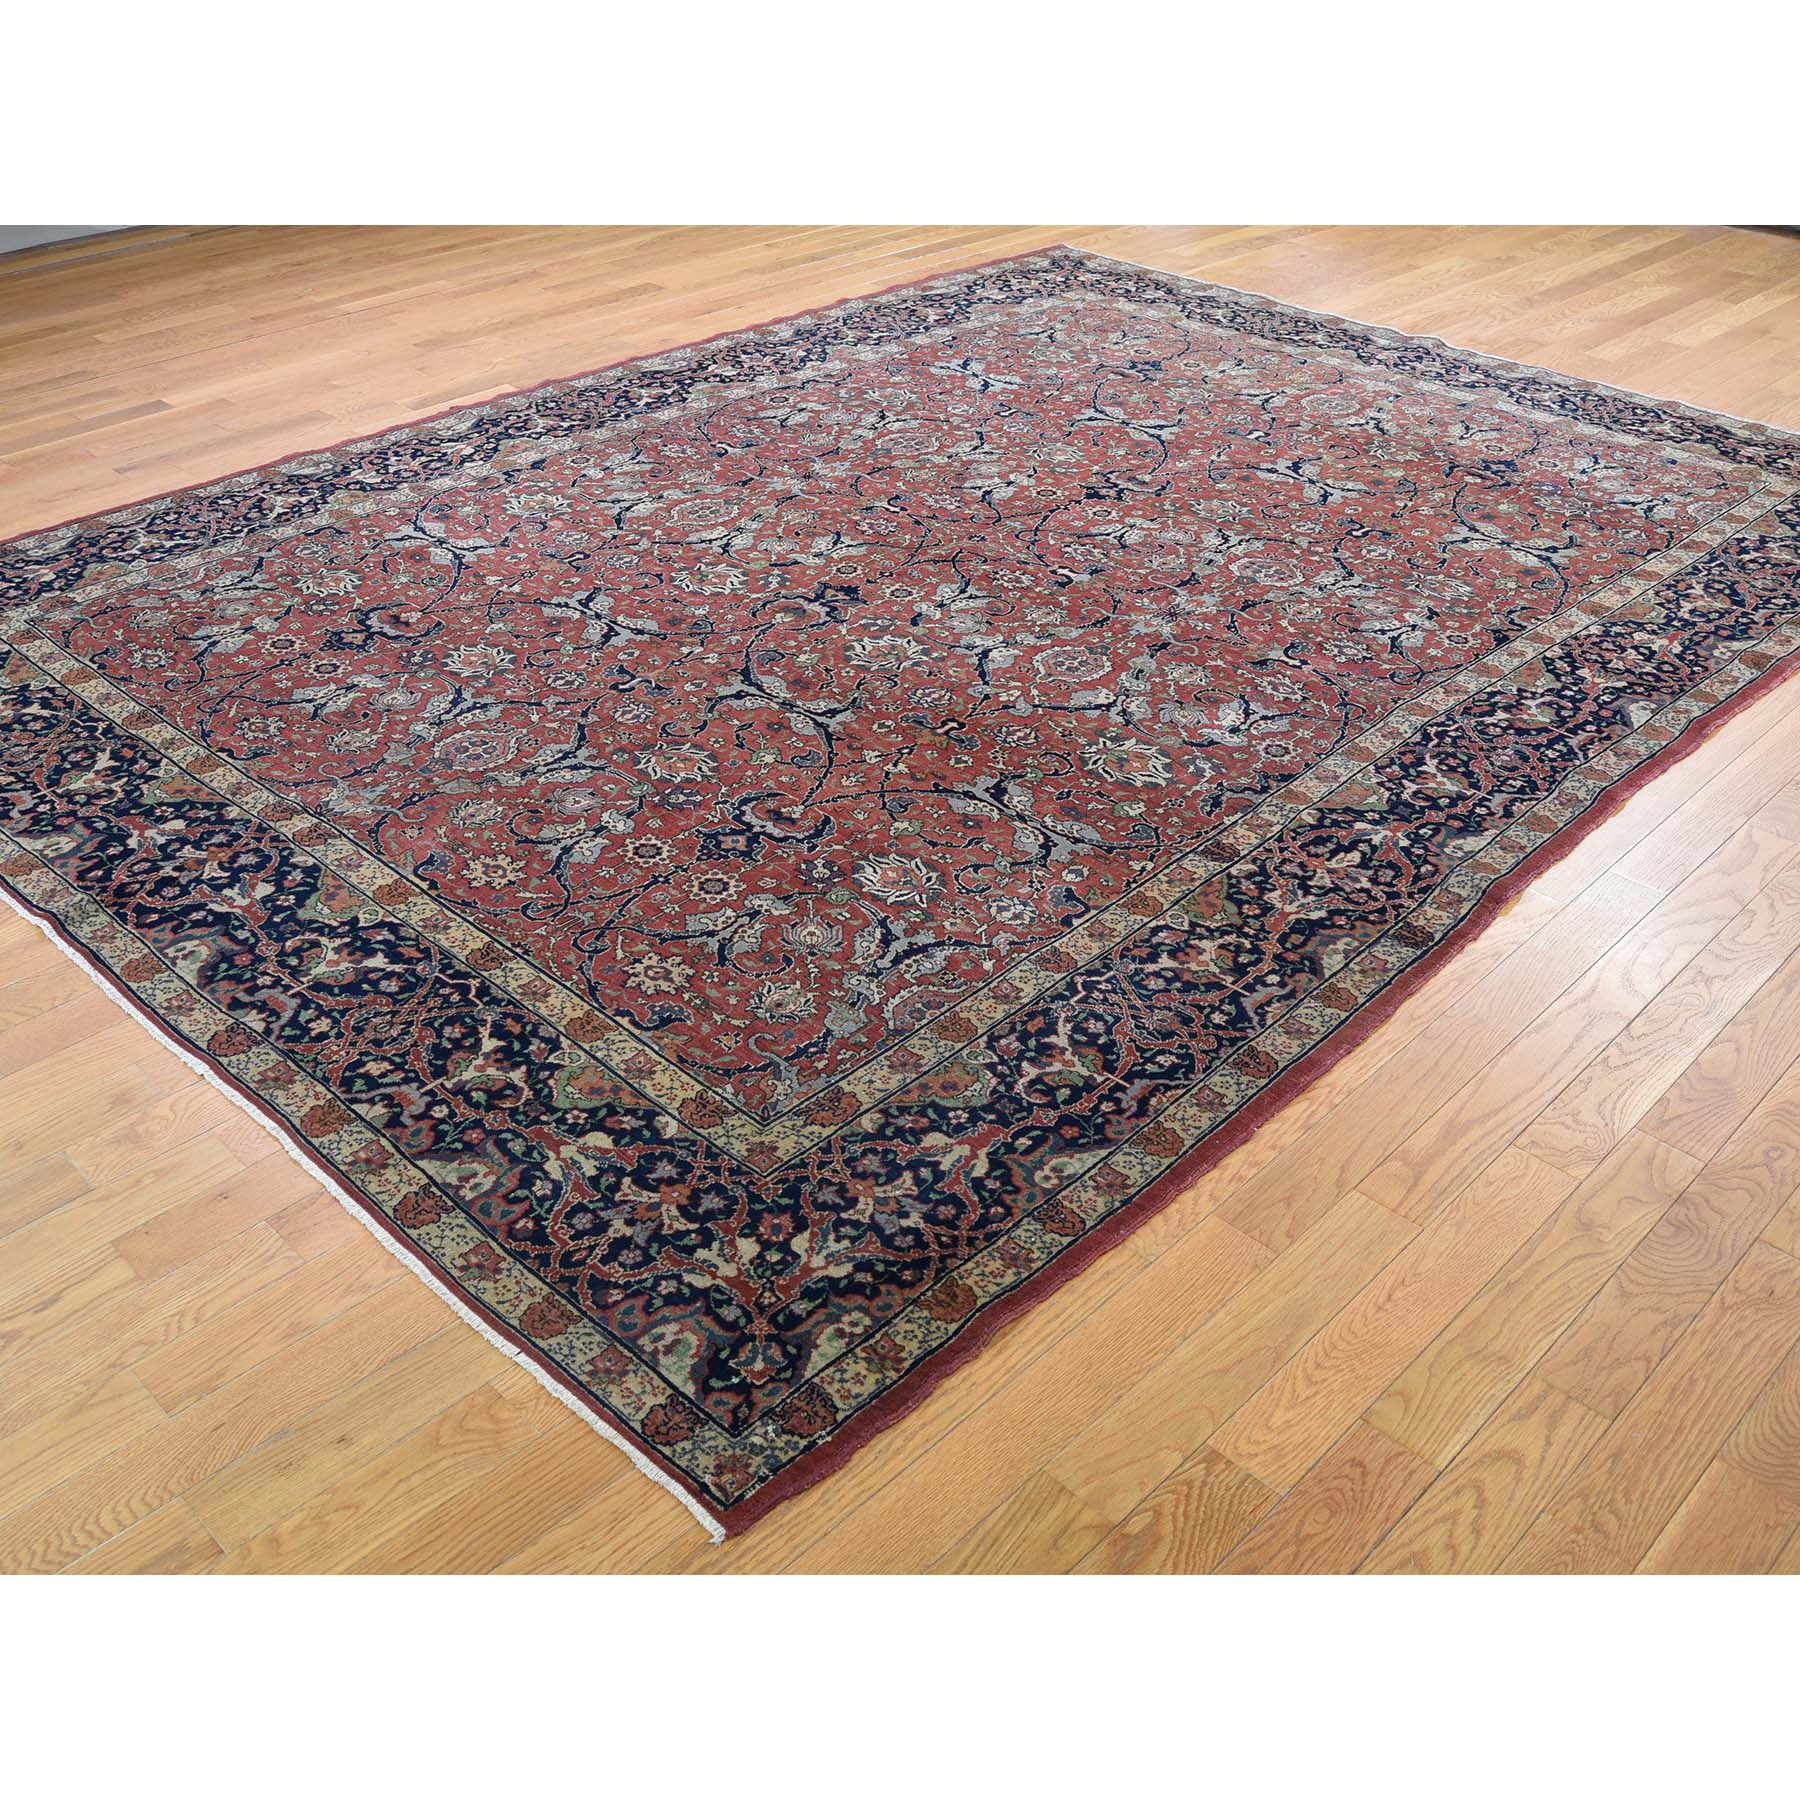 "Handmade Antique Rectangle Rug > Design# SH44873 > Size: 8'-4"" x 11'-0"" [ONLINE ONLY]"